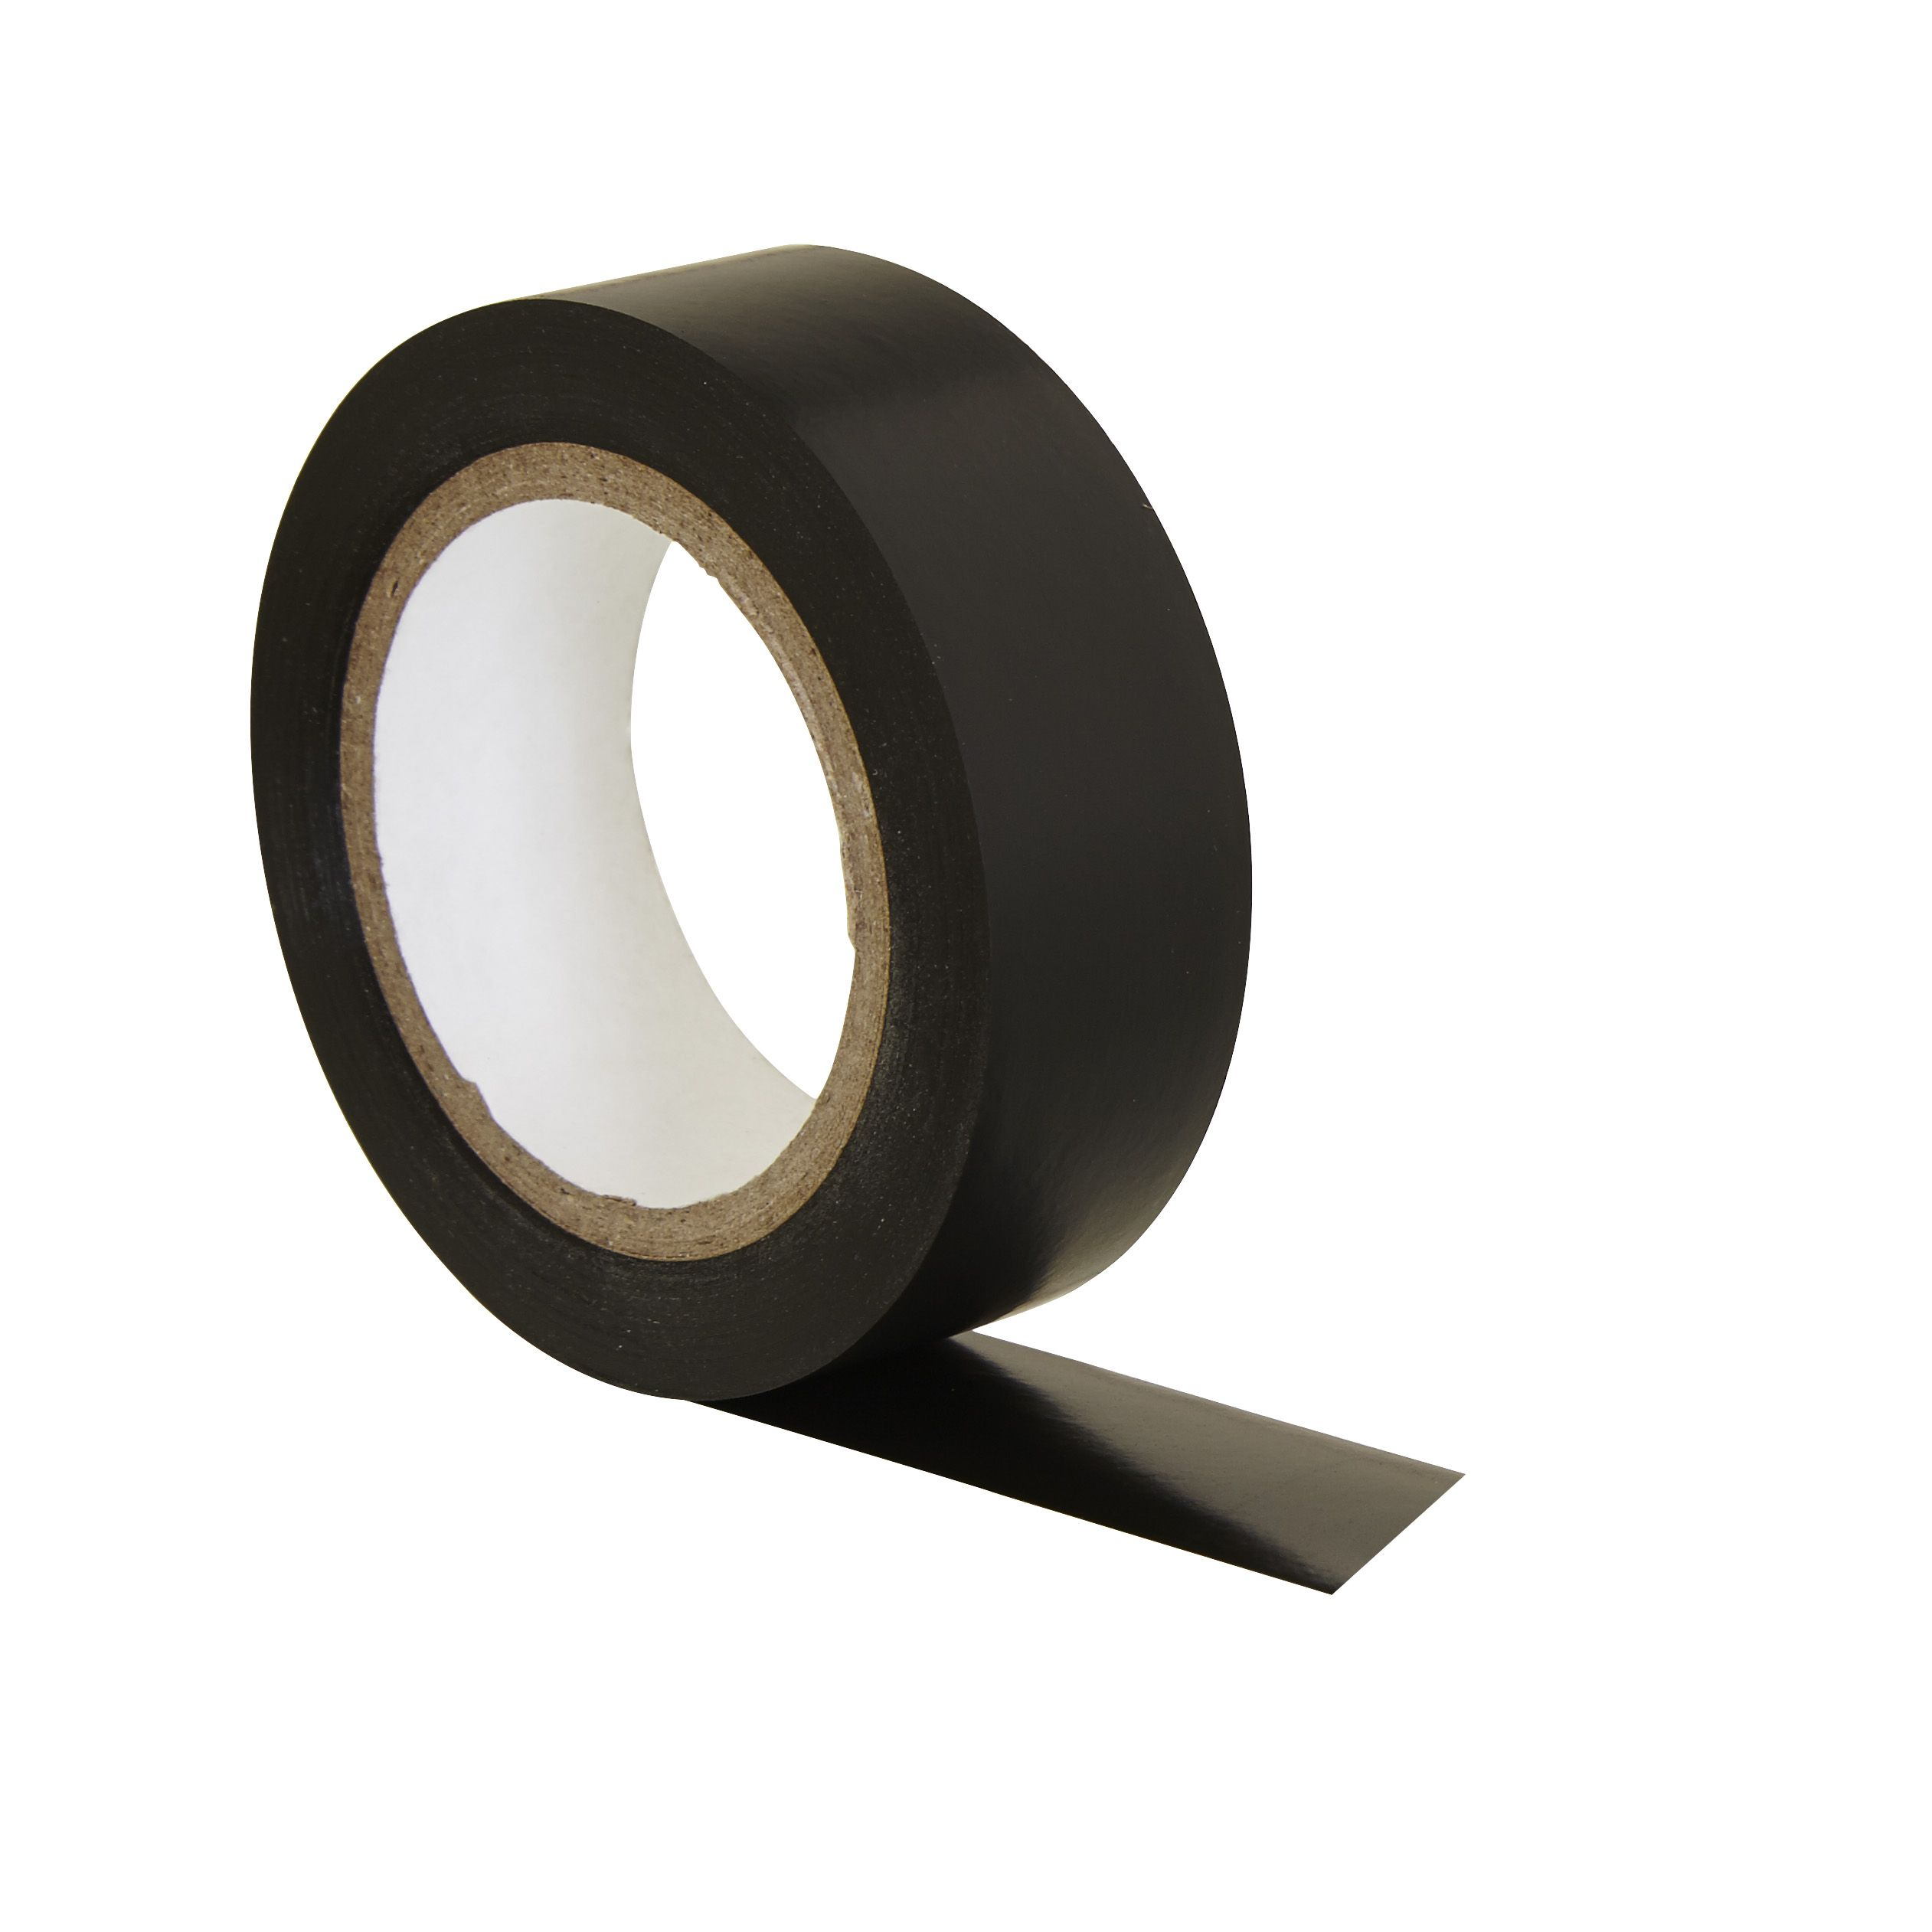 B Amp Q Black Electrical Tape L 10m W 19mm Departments